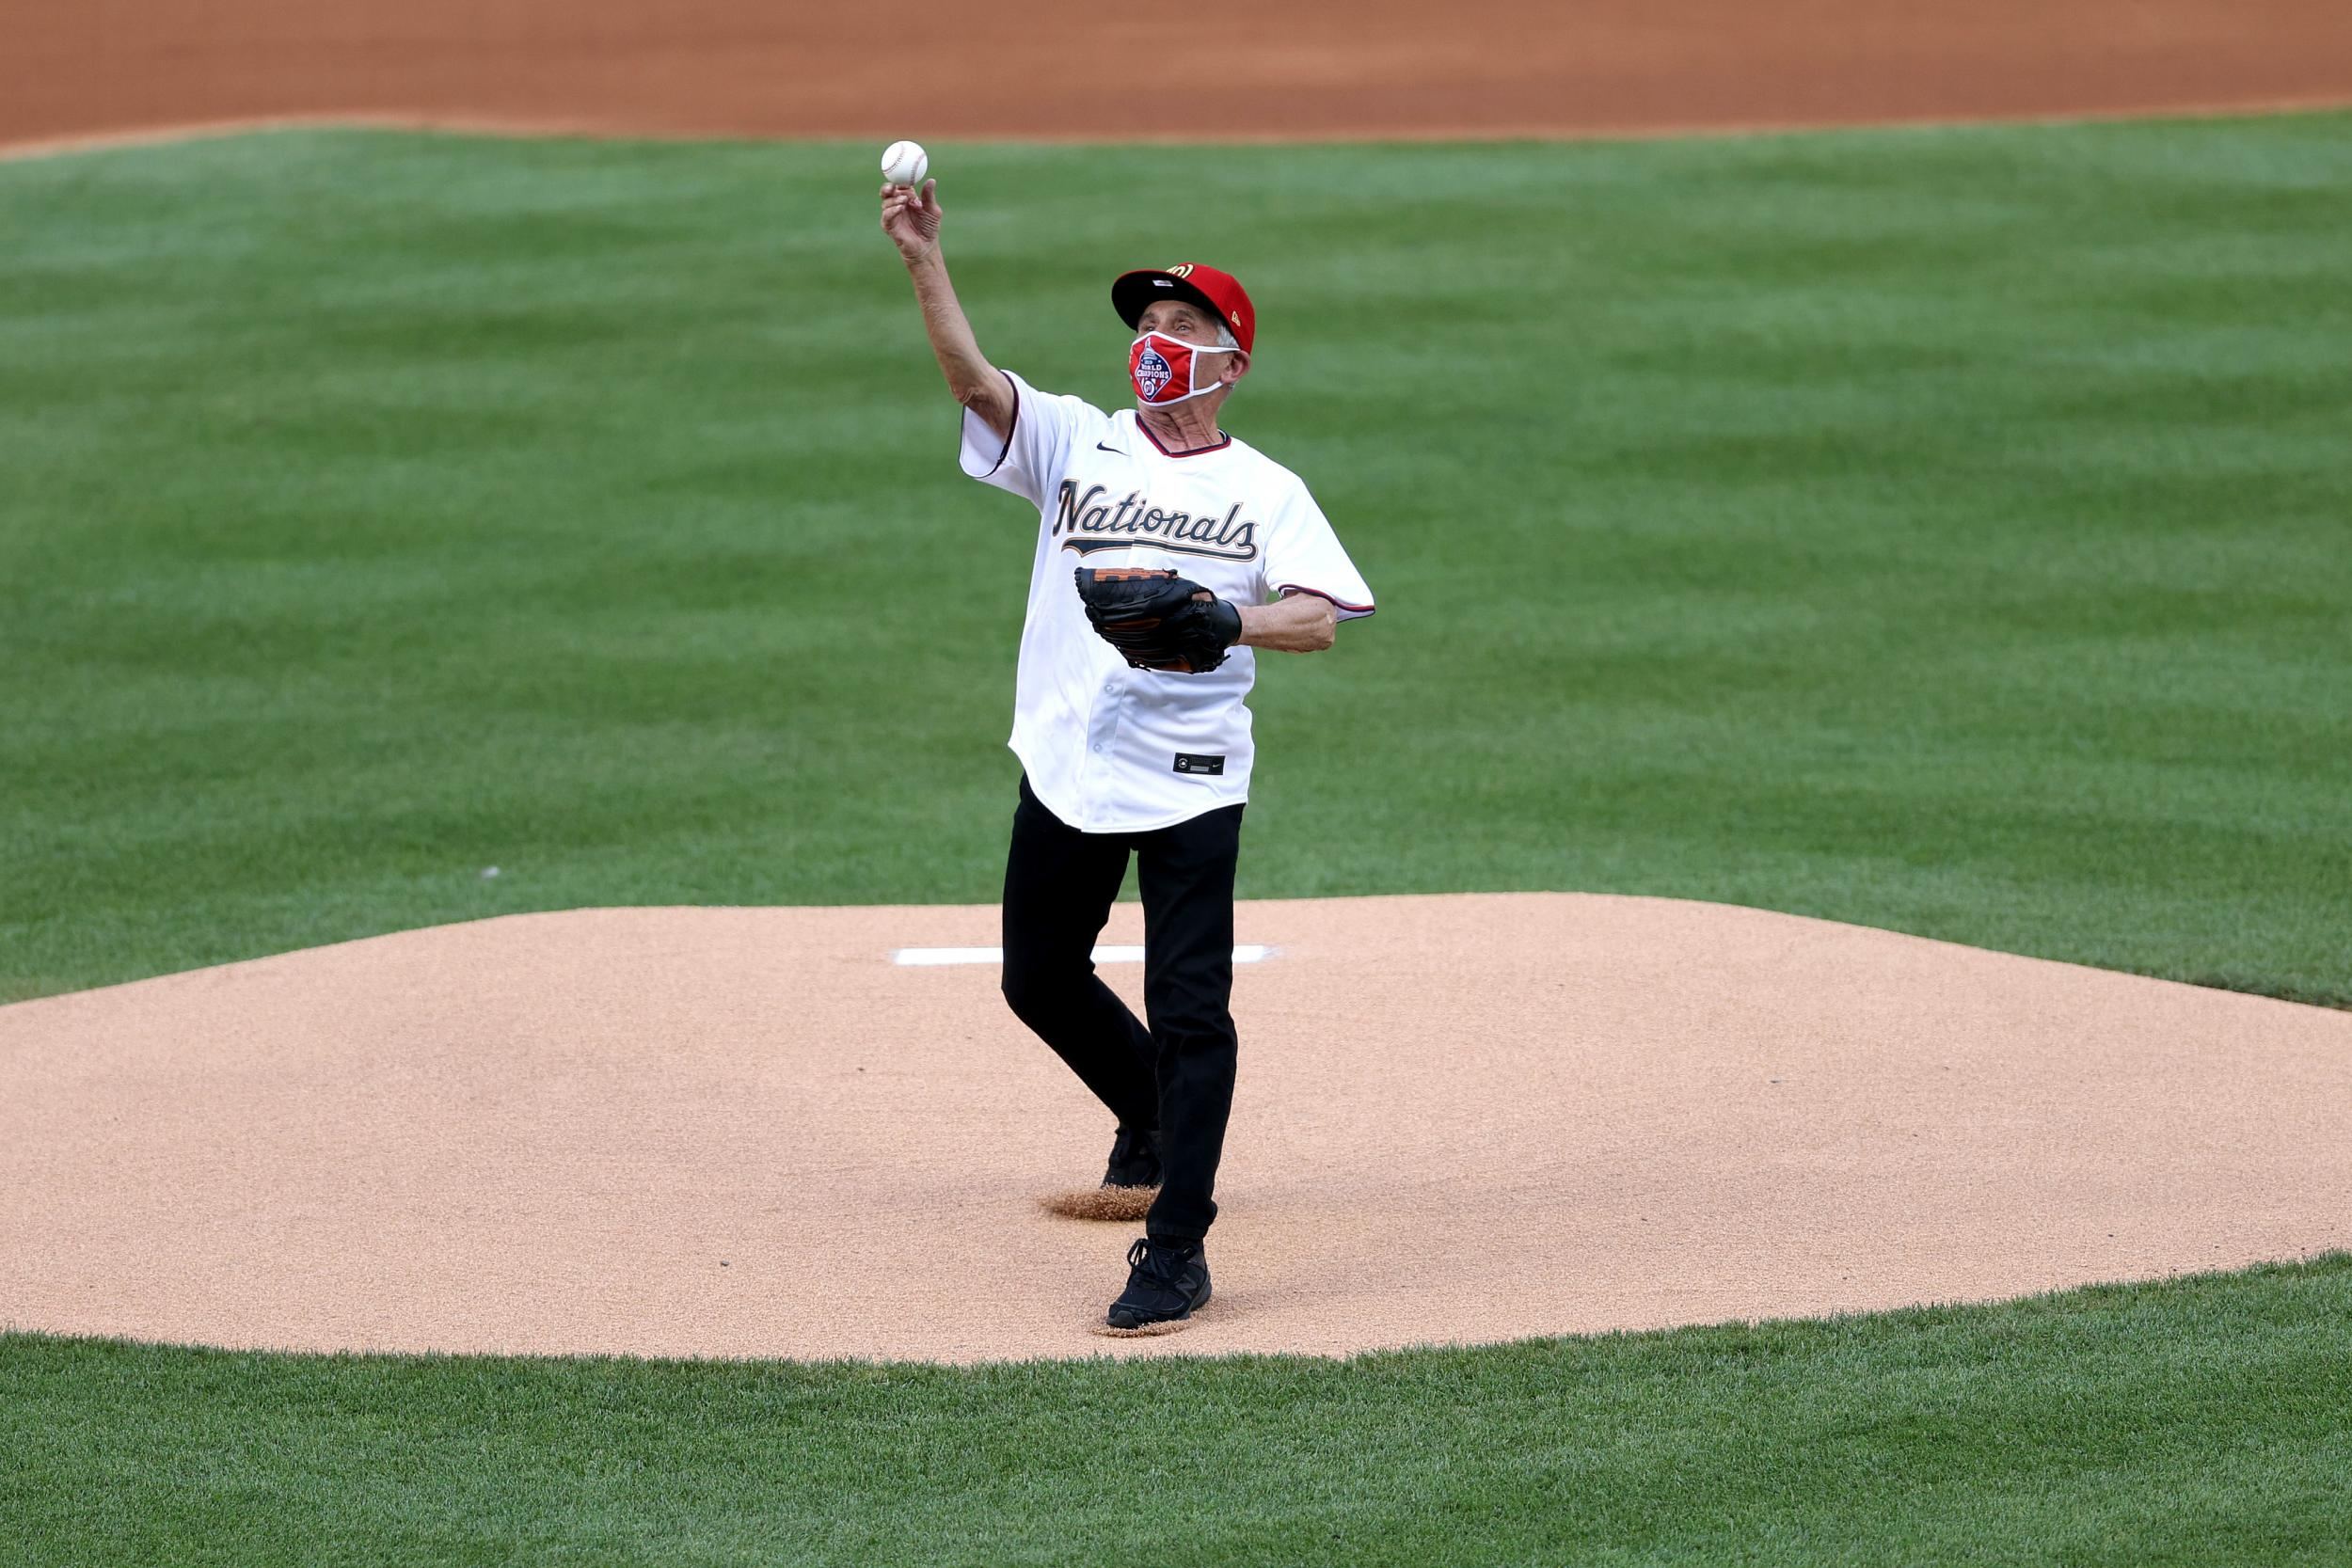 Dr Fauci throws out ceremonial first pitch on opening day of baseball season thumbnail